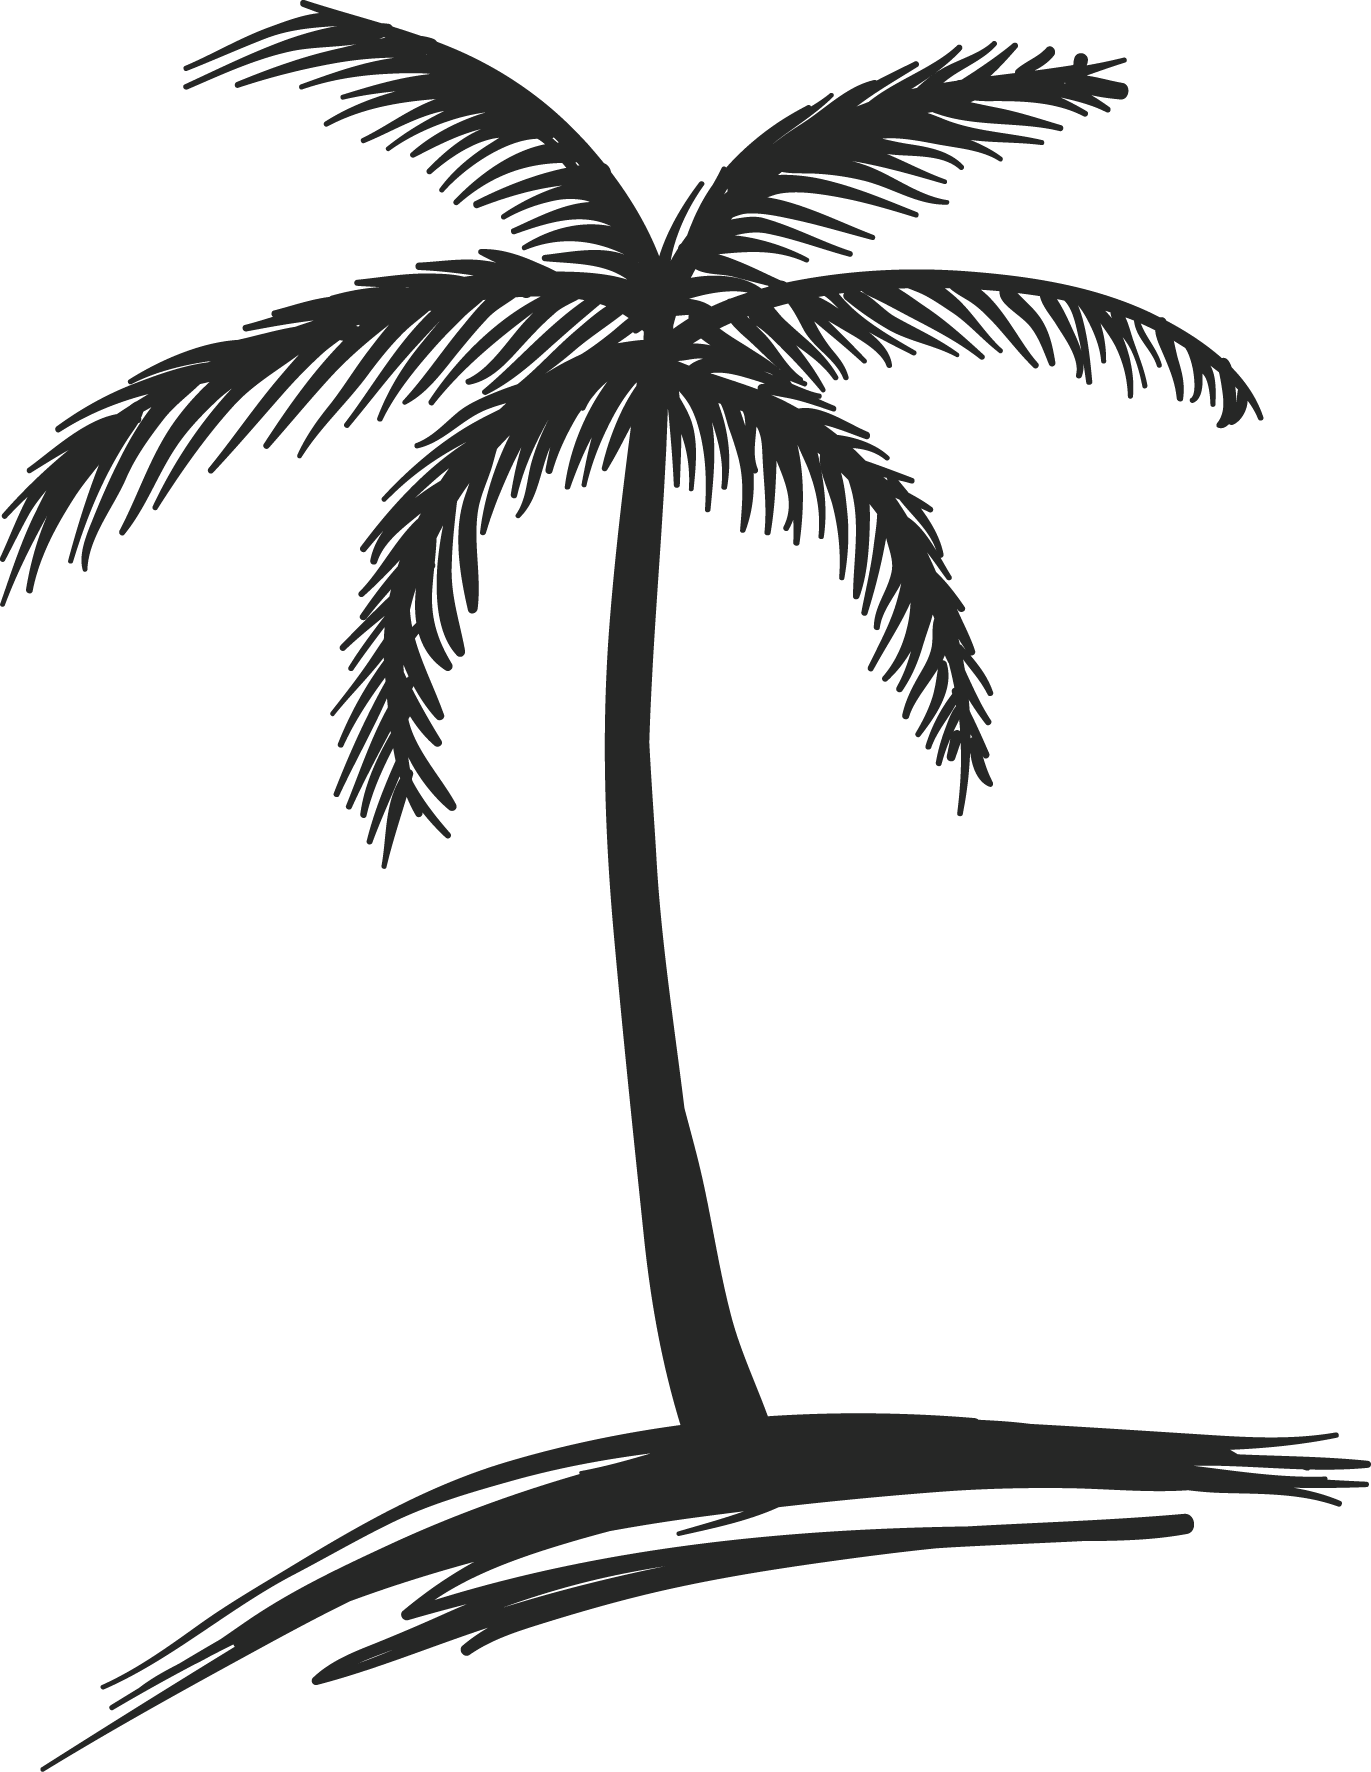 Free coconut tree download. Palm leaf drawing png clipart transparent library